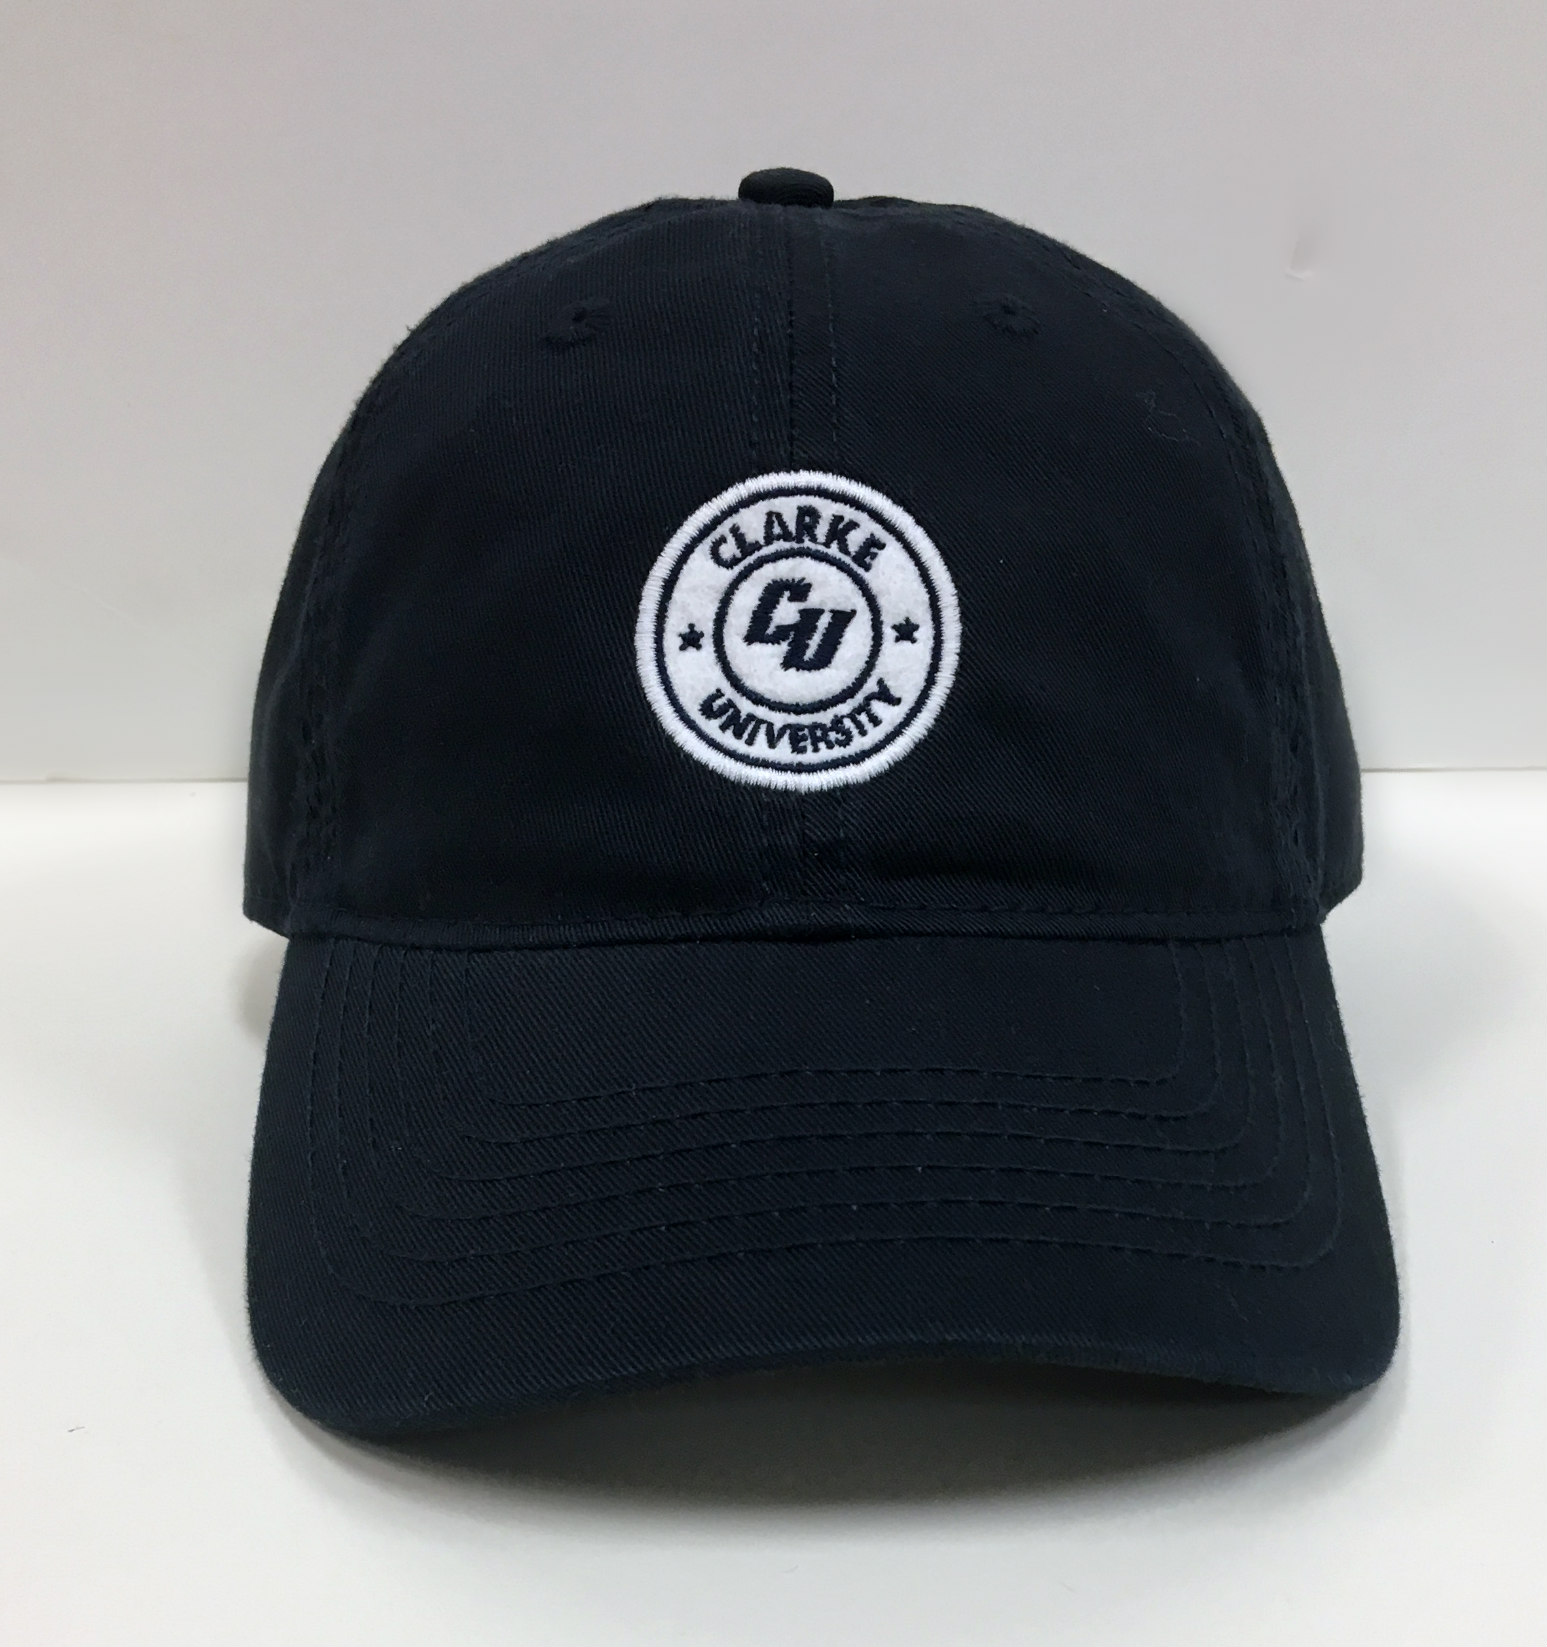 Image for the Women's Twill Hat Navy w/Felt CU product